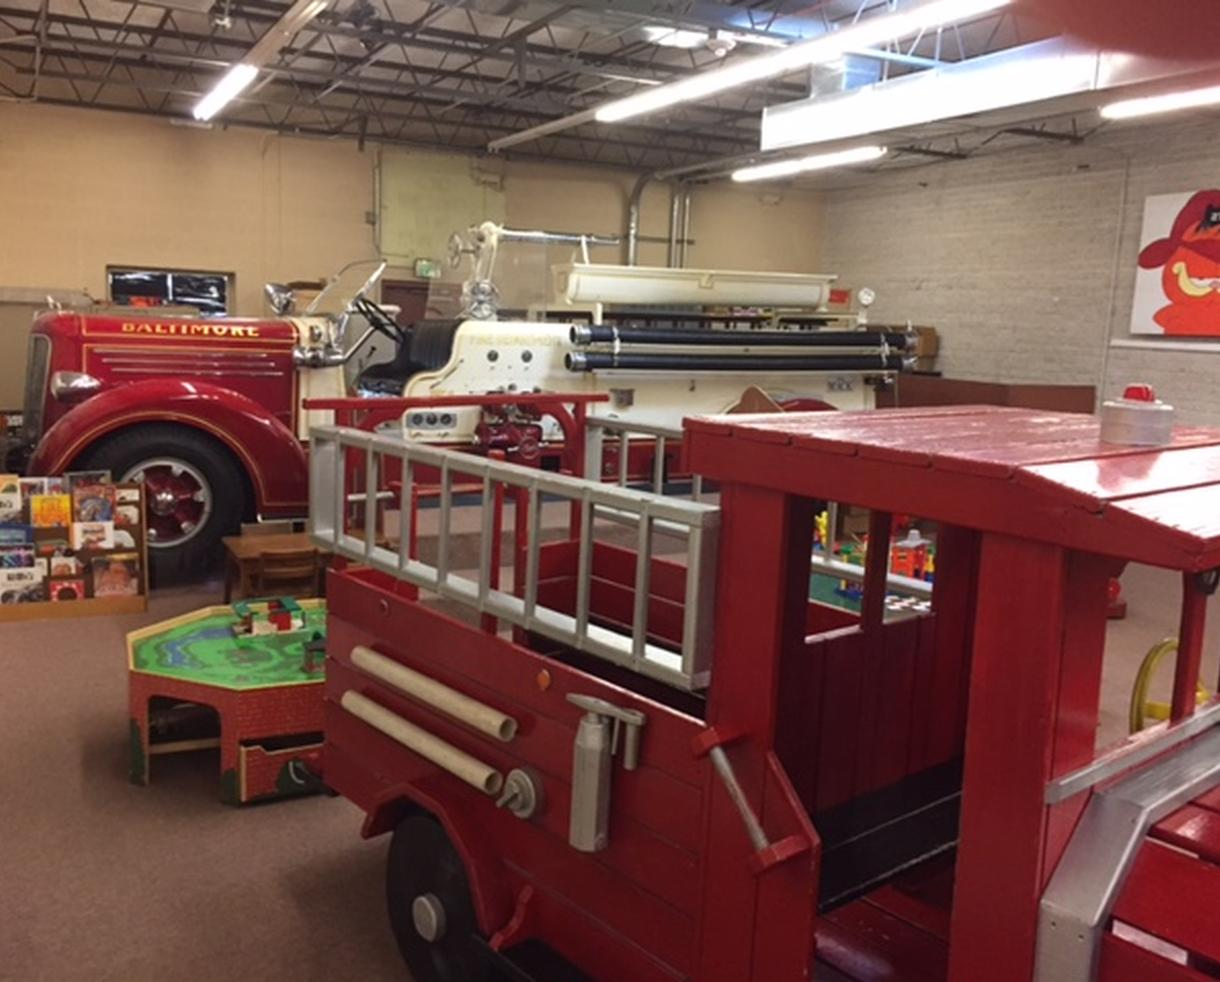 Fire Museum of Maryland Admission for 1 Adult and 2 Children